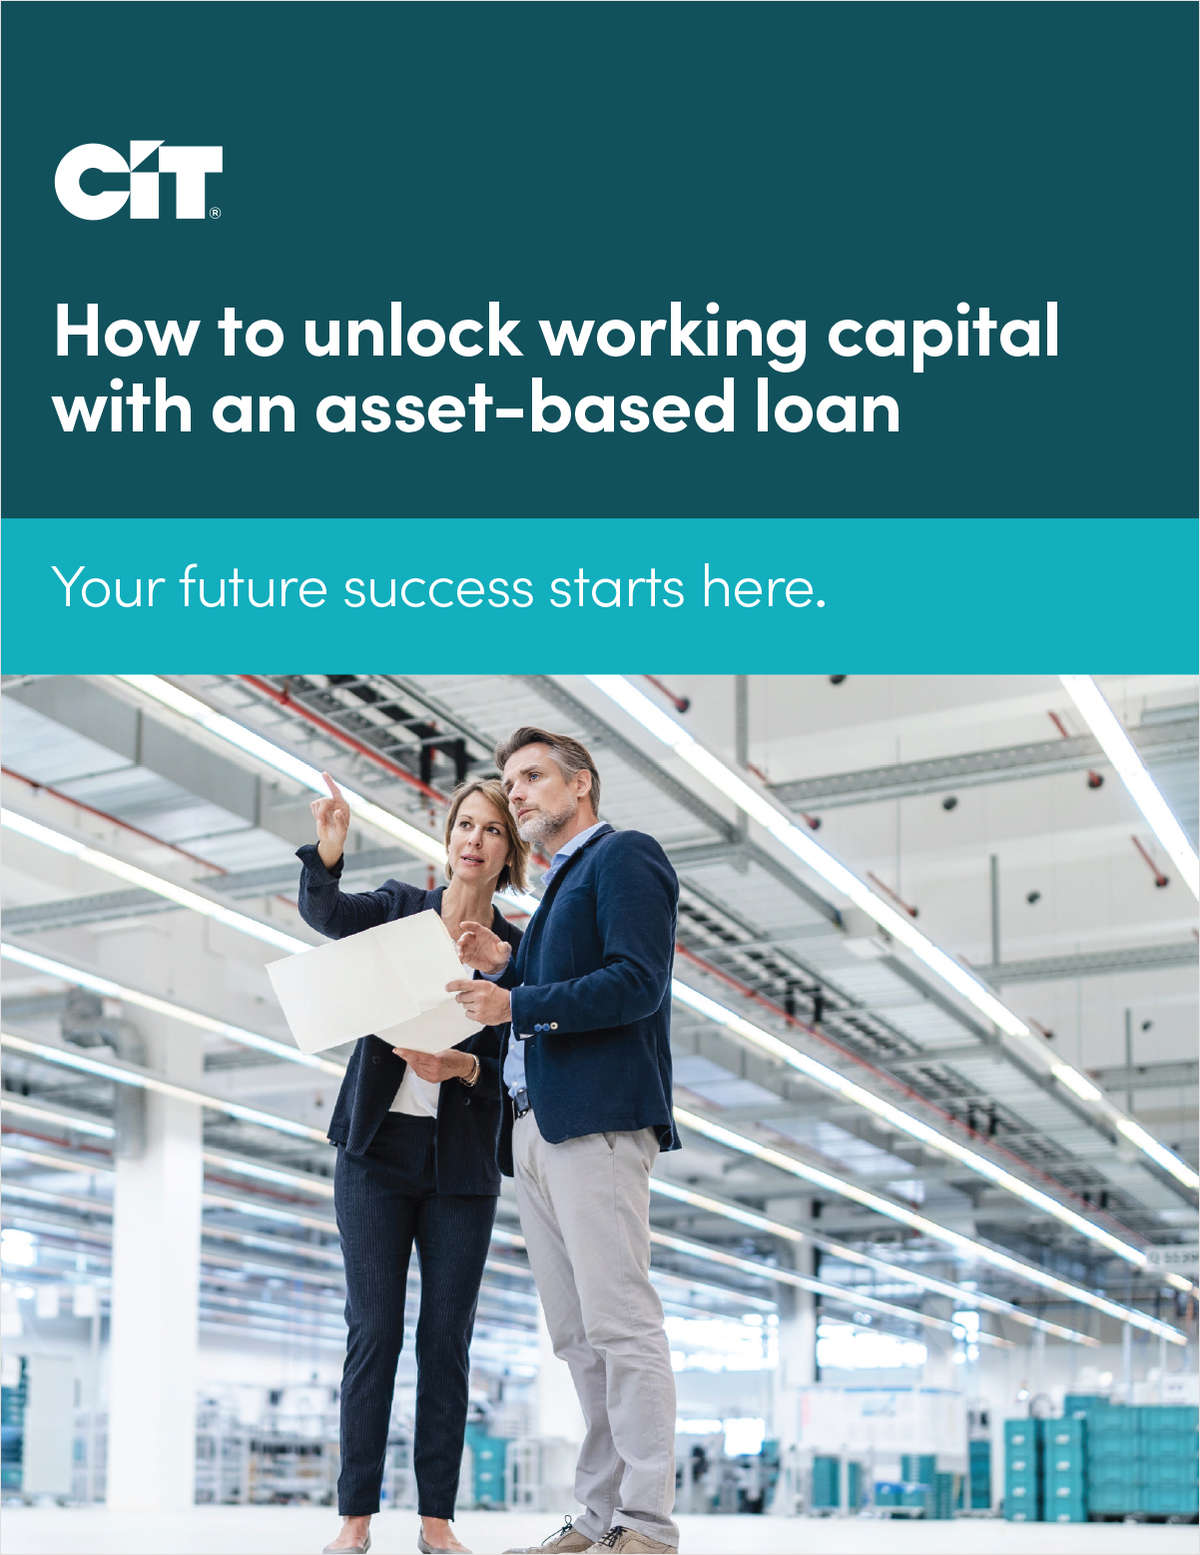 How to Unlock Working Capital with an Asset-Based Loan